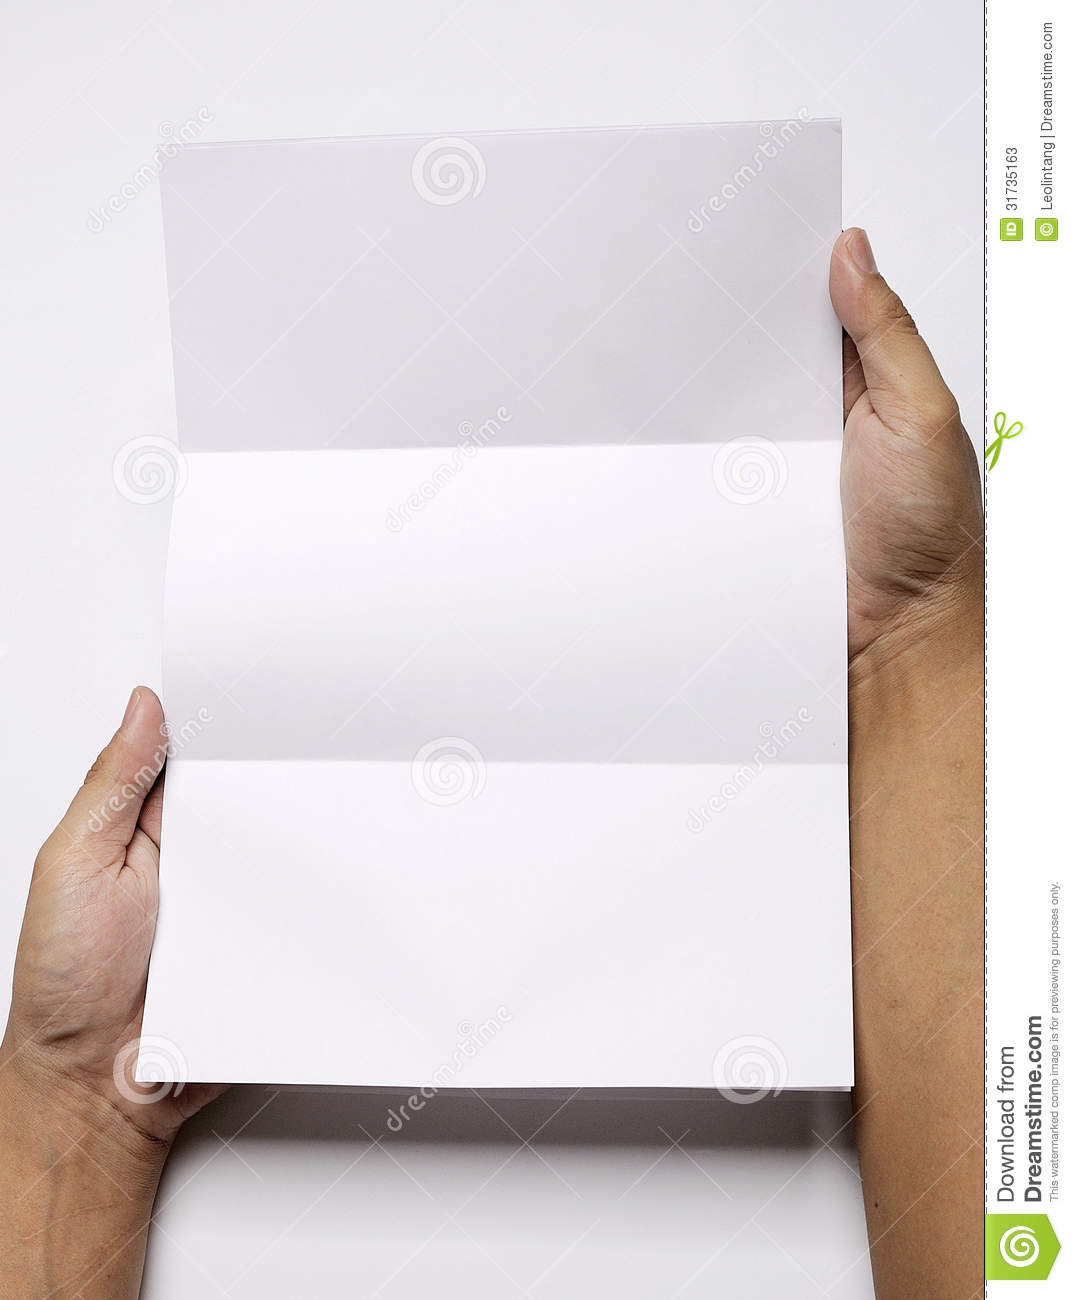 blank top writing paper